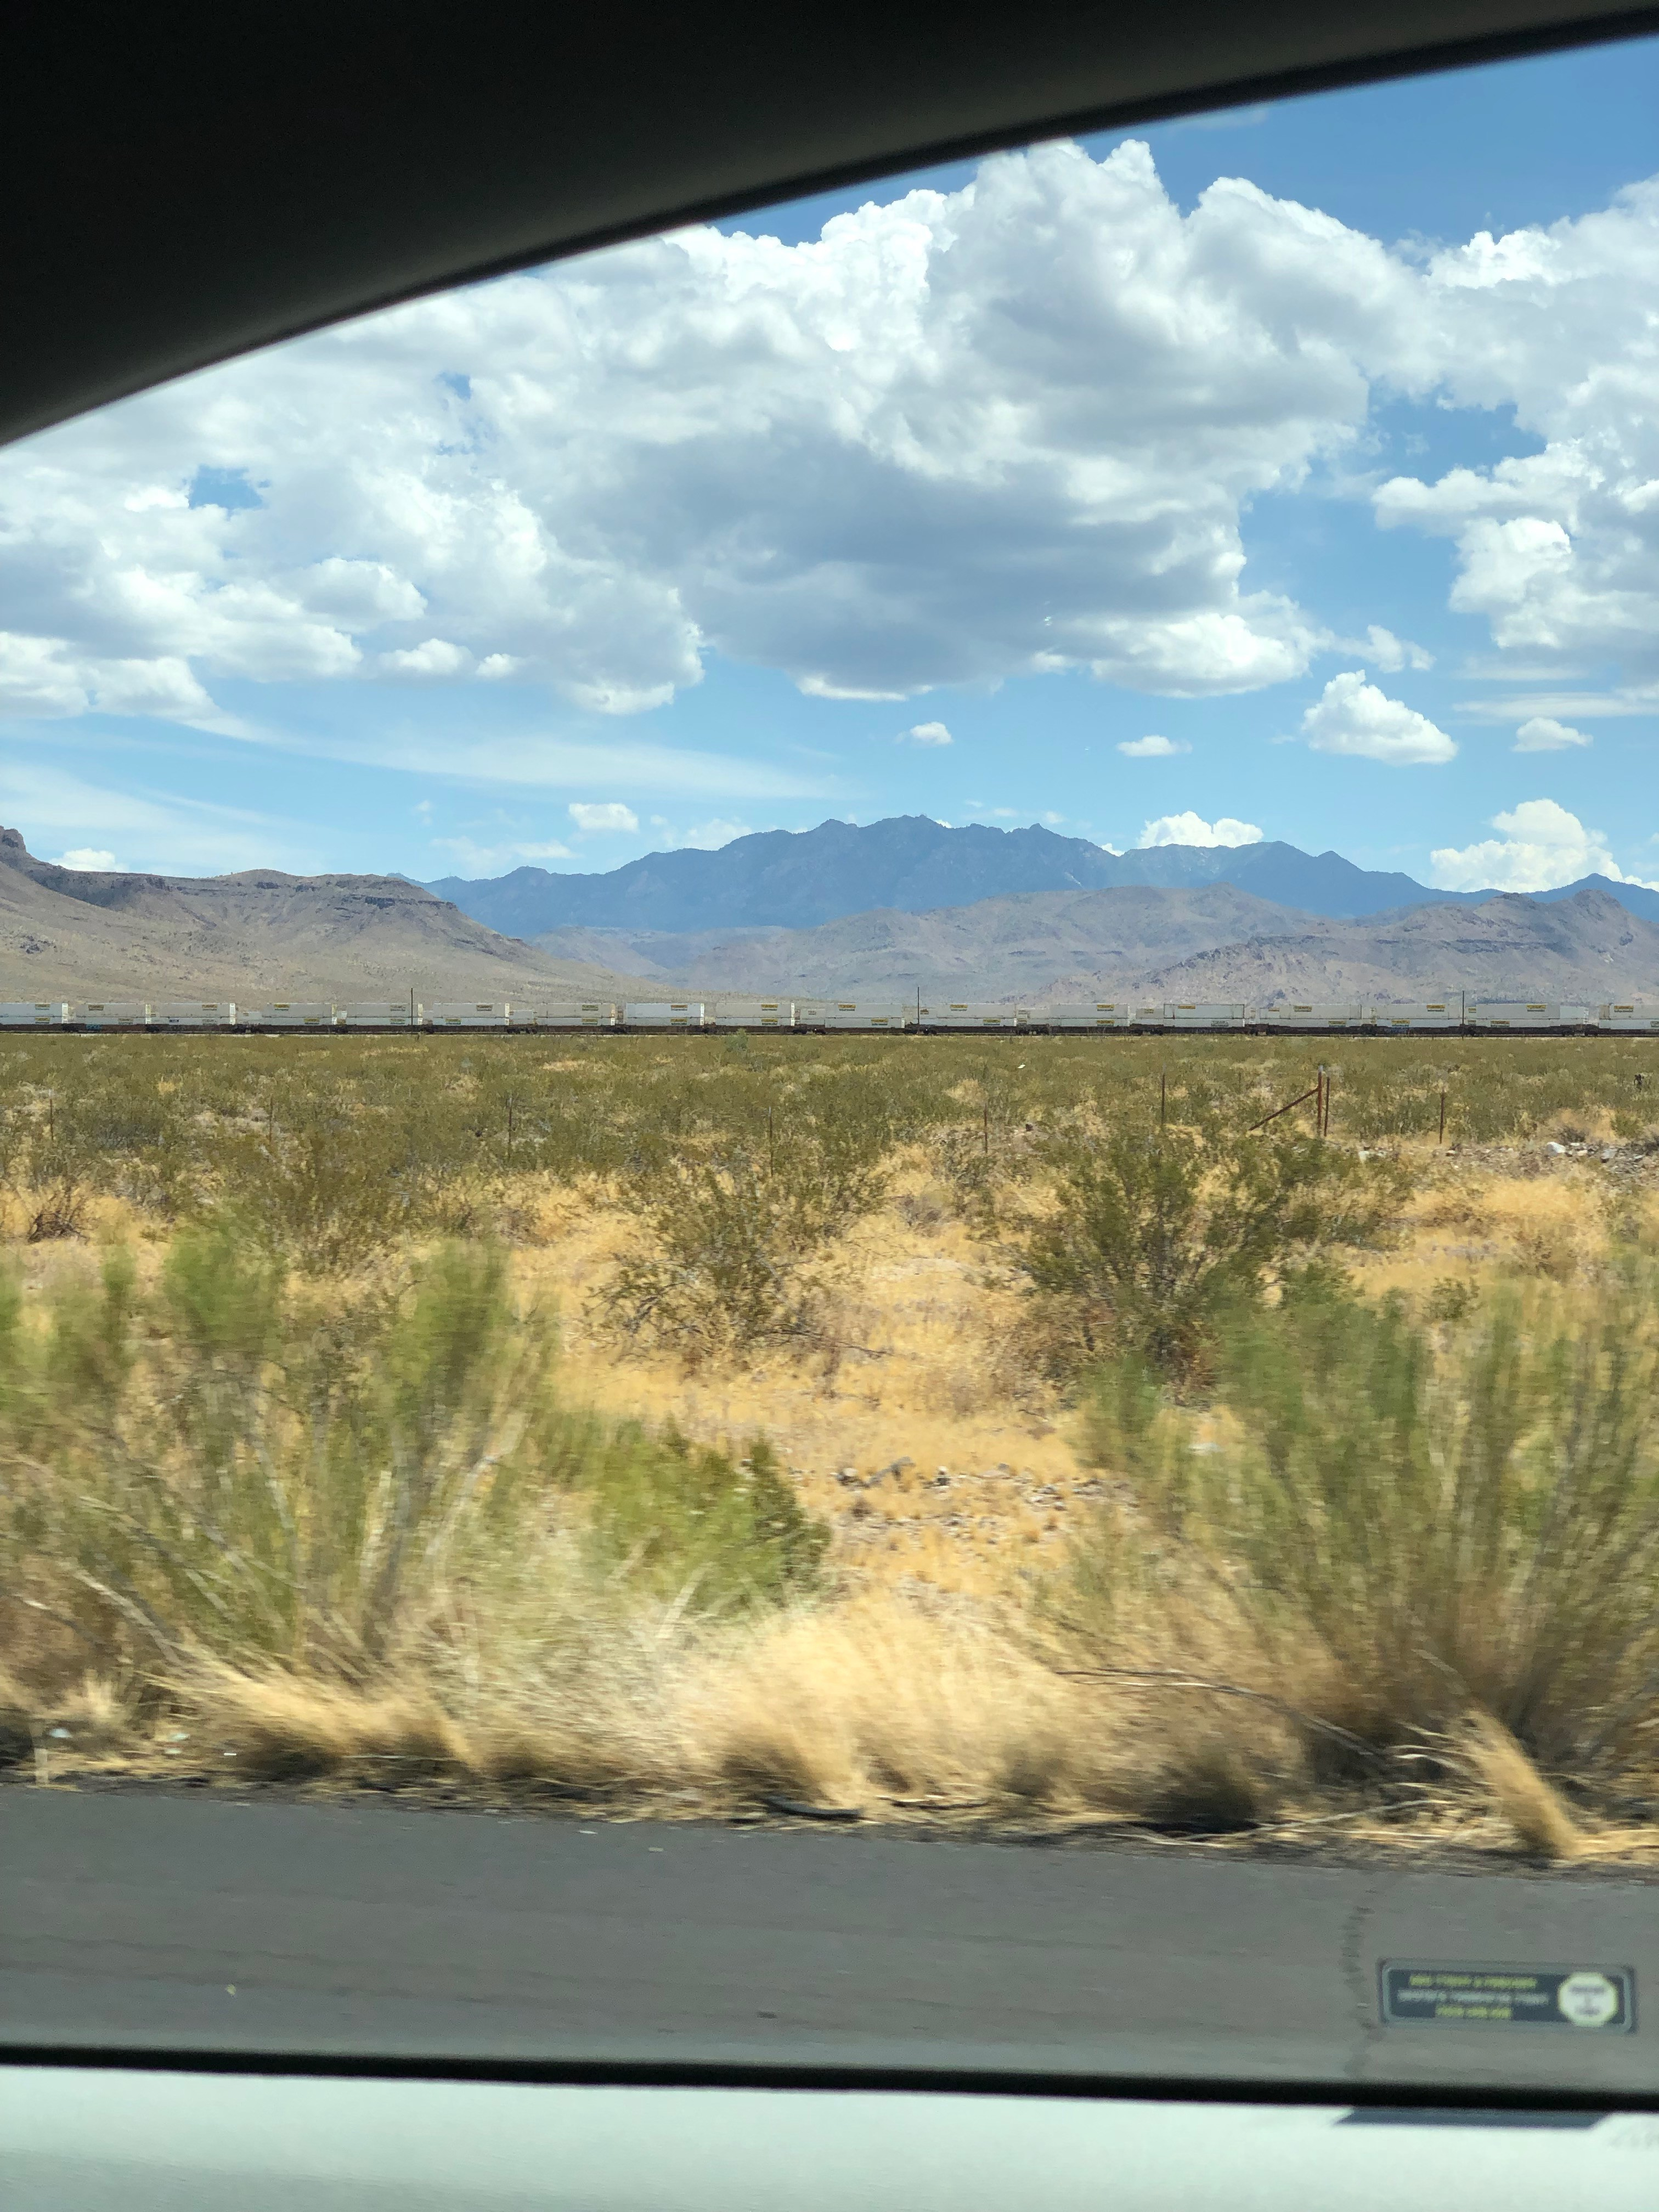 Picture of the Arizona desert and mountains taken through a car window.